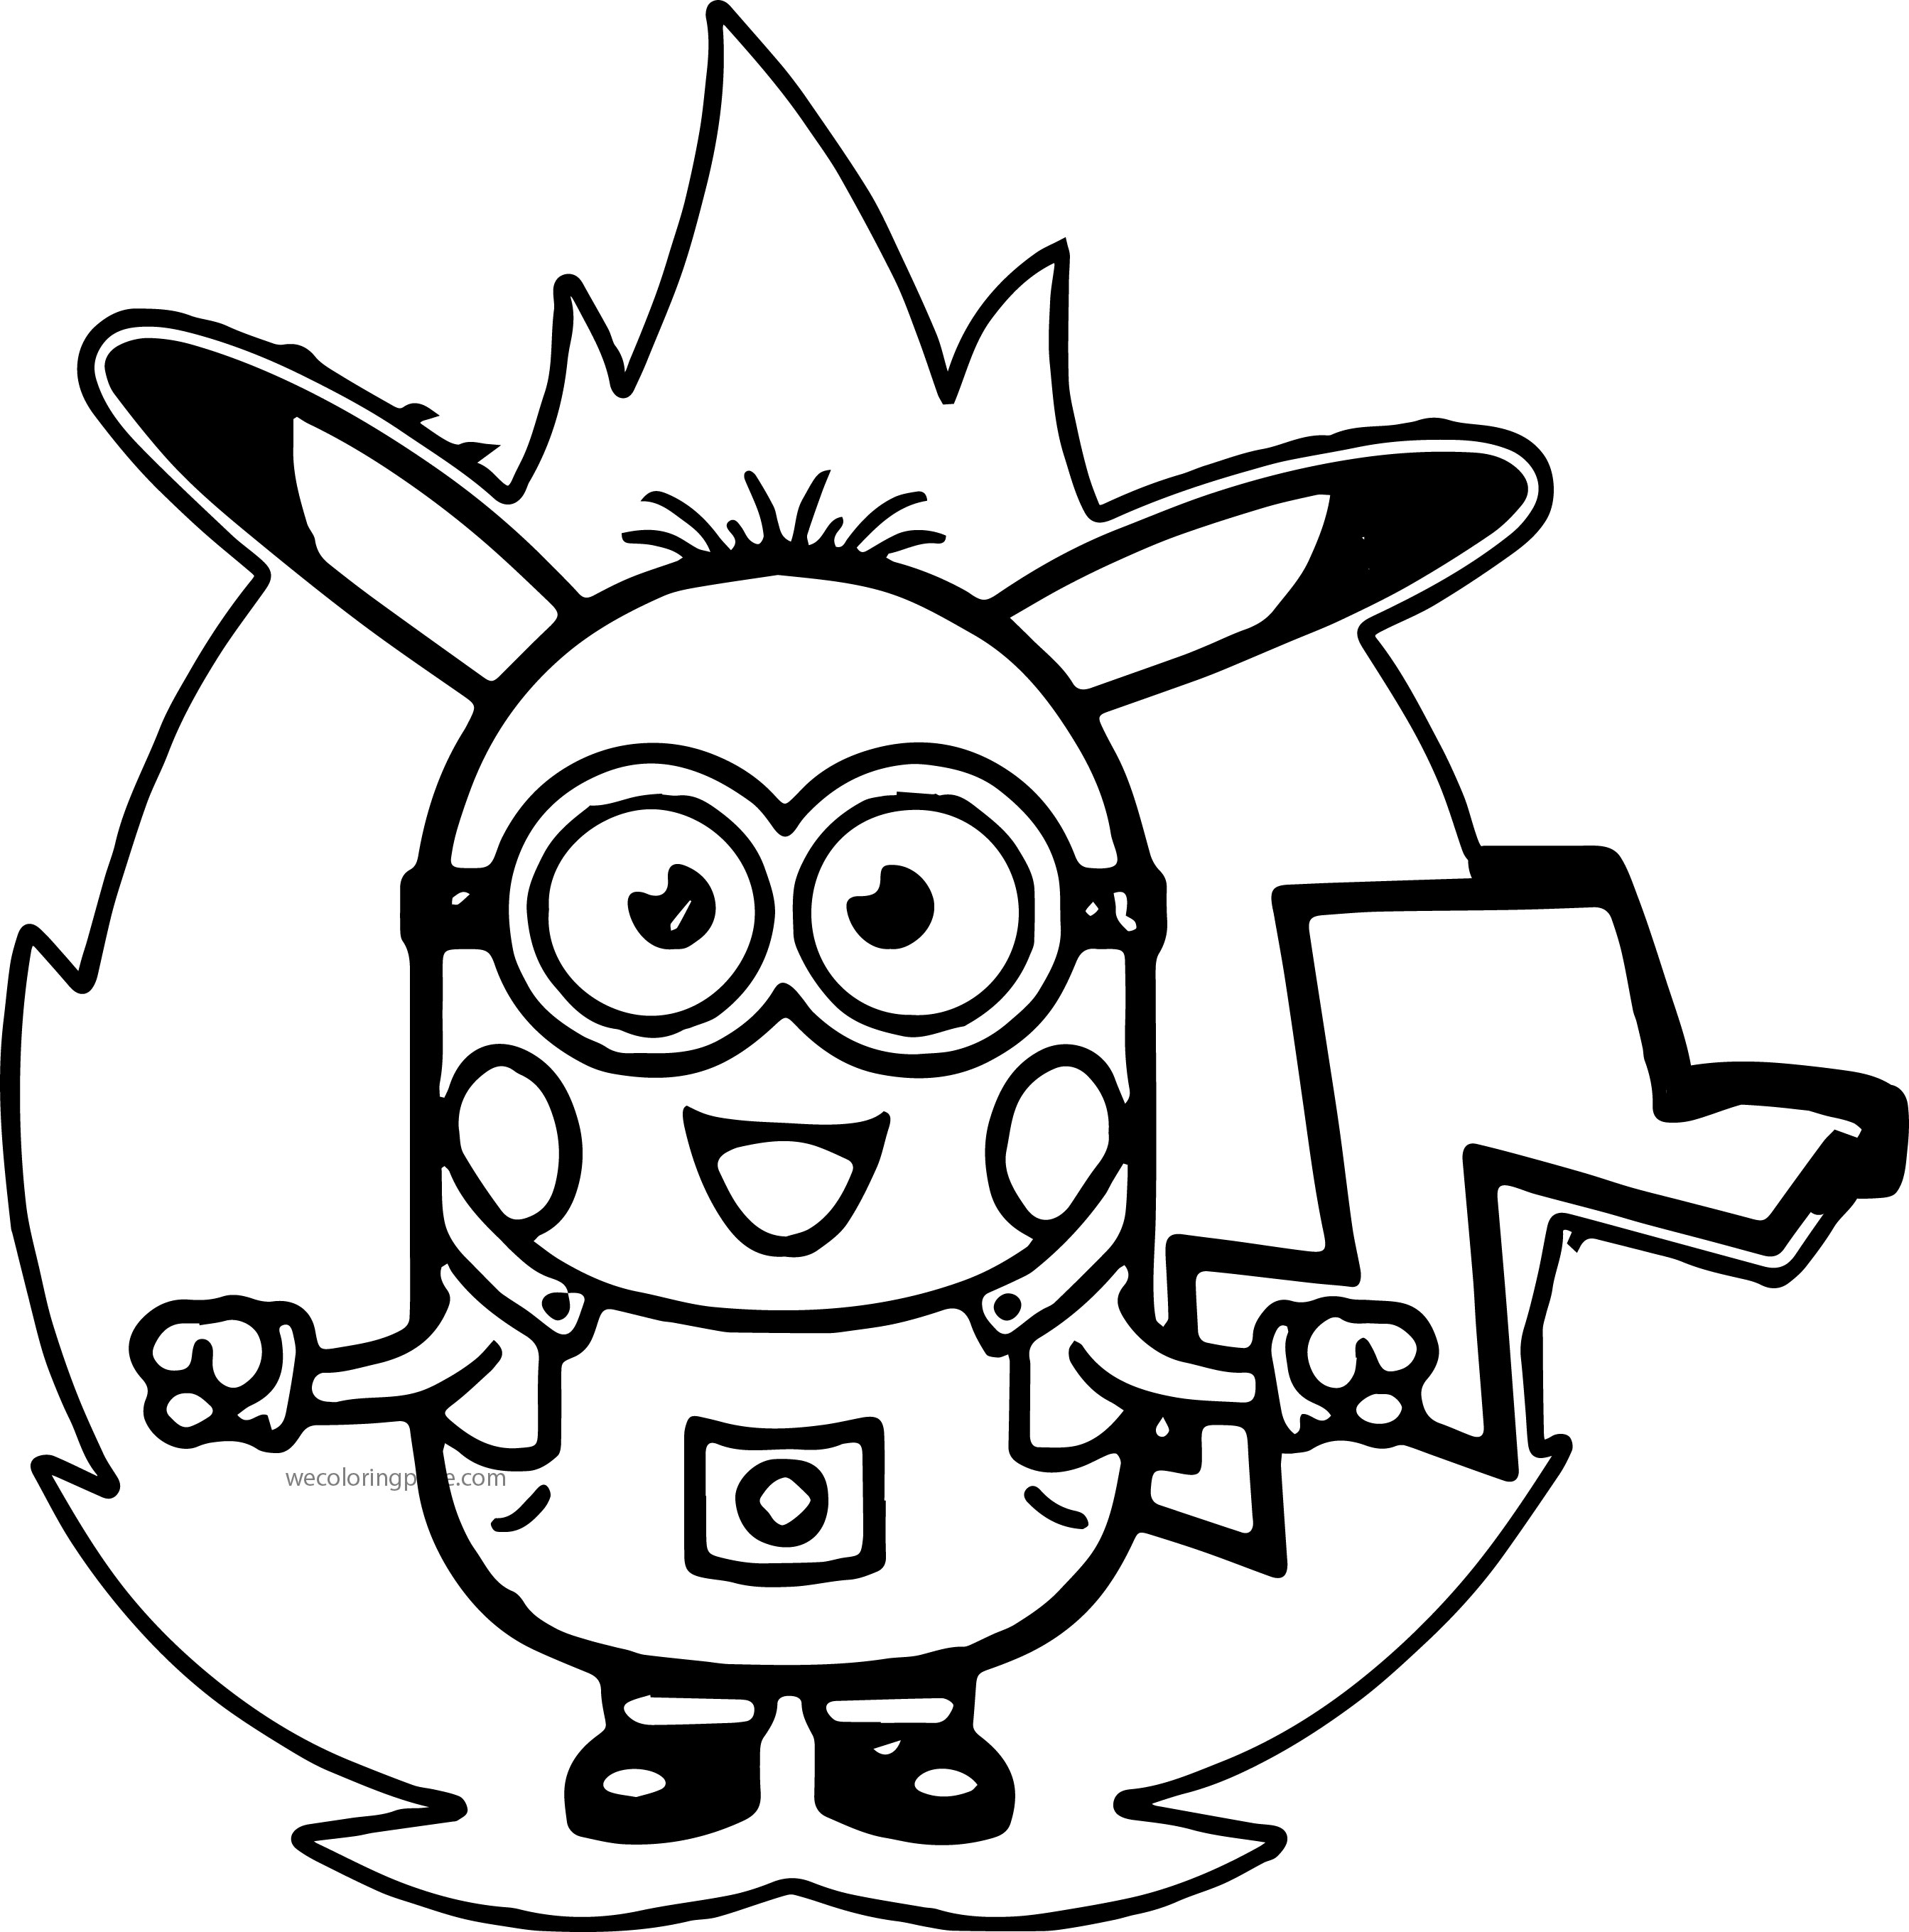 minion pokemon coloring pages - Coloring Page Pokemon